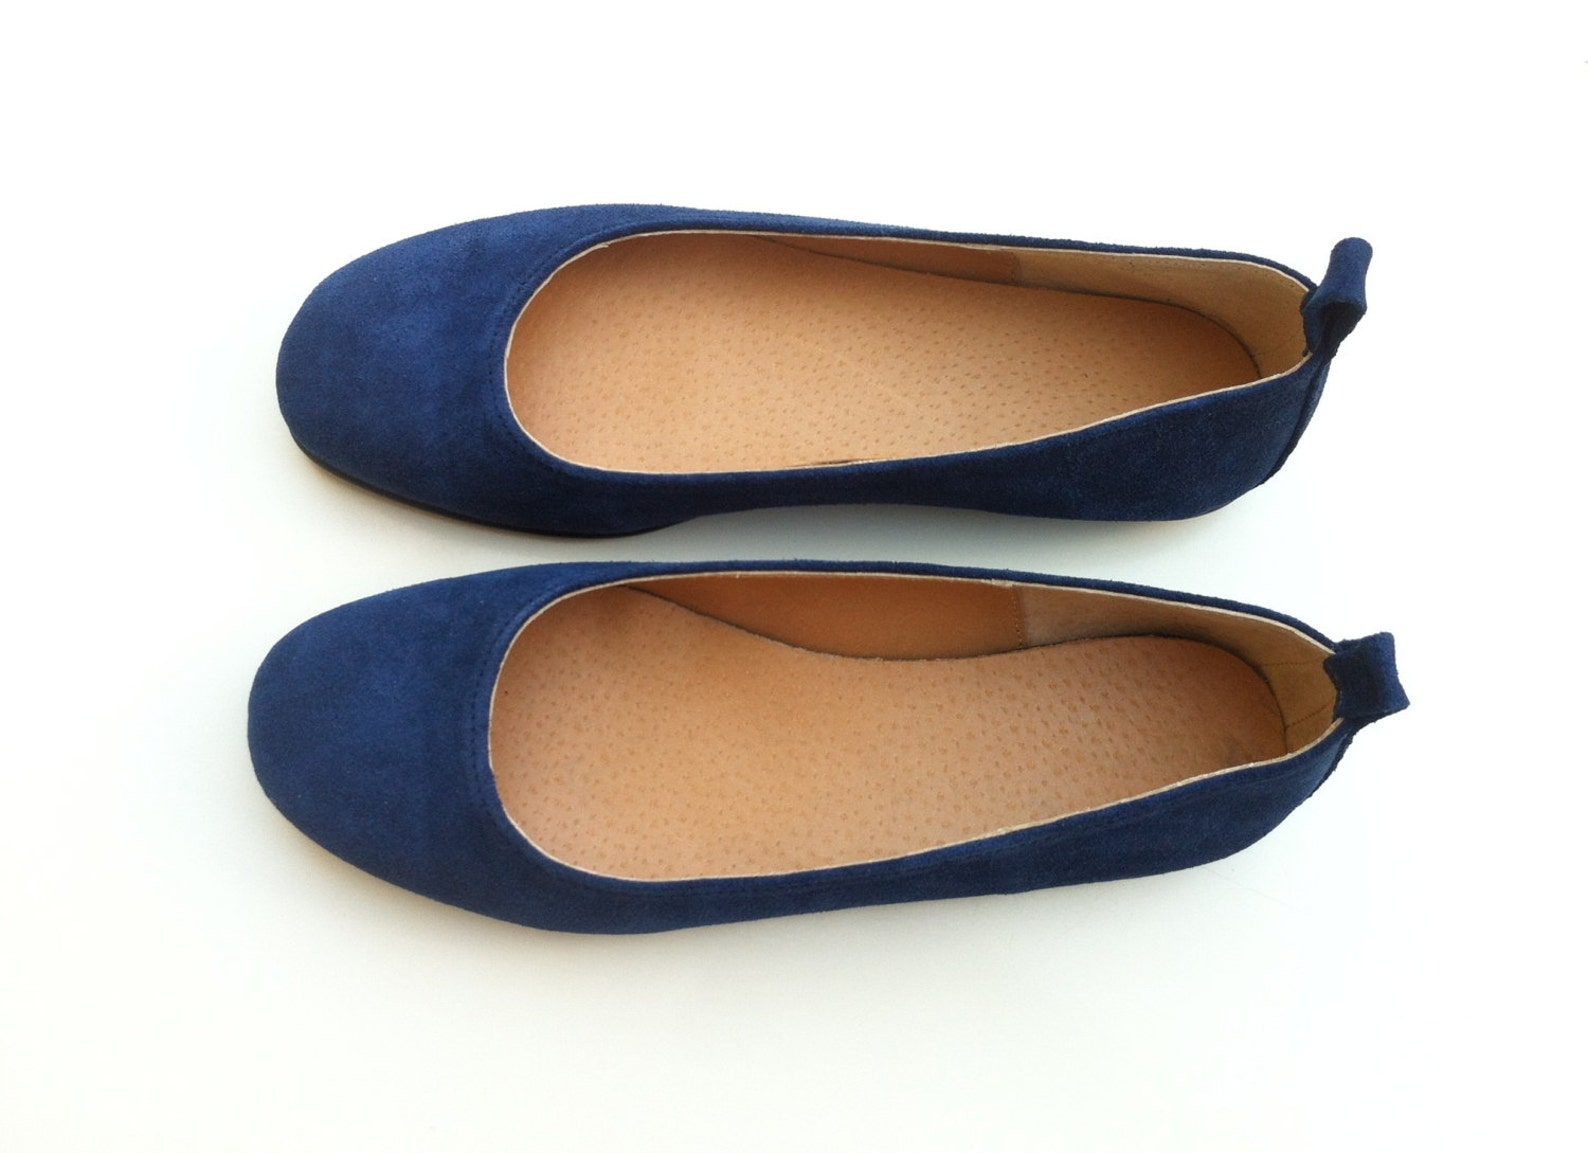 leather flat shoes for women - womens ballet shoes - blue leather shoes - leather pumps